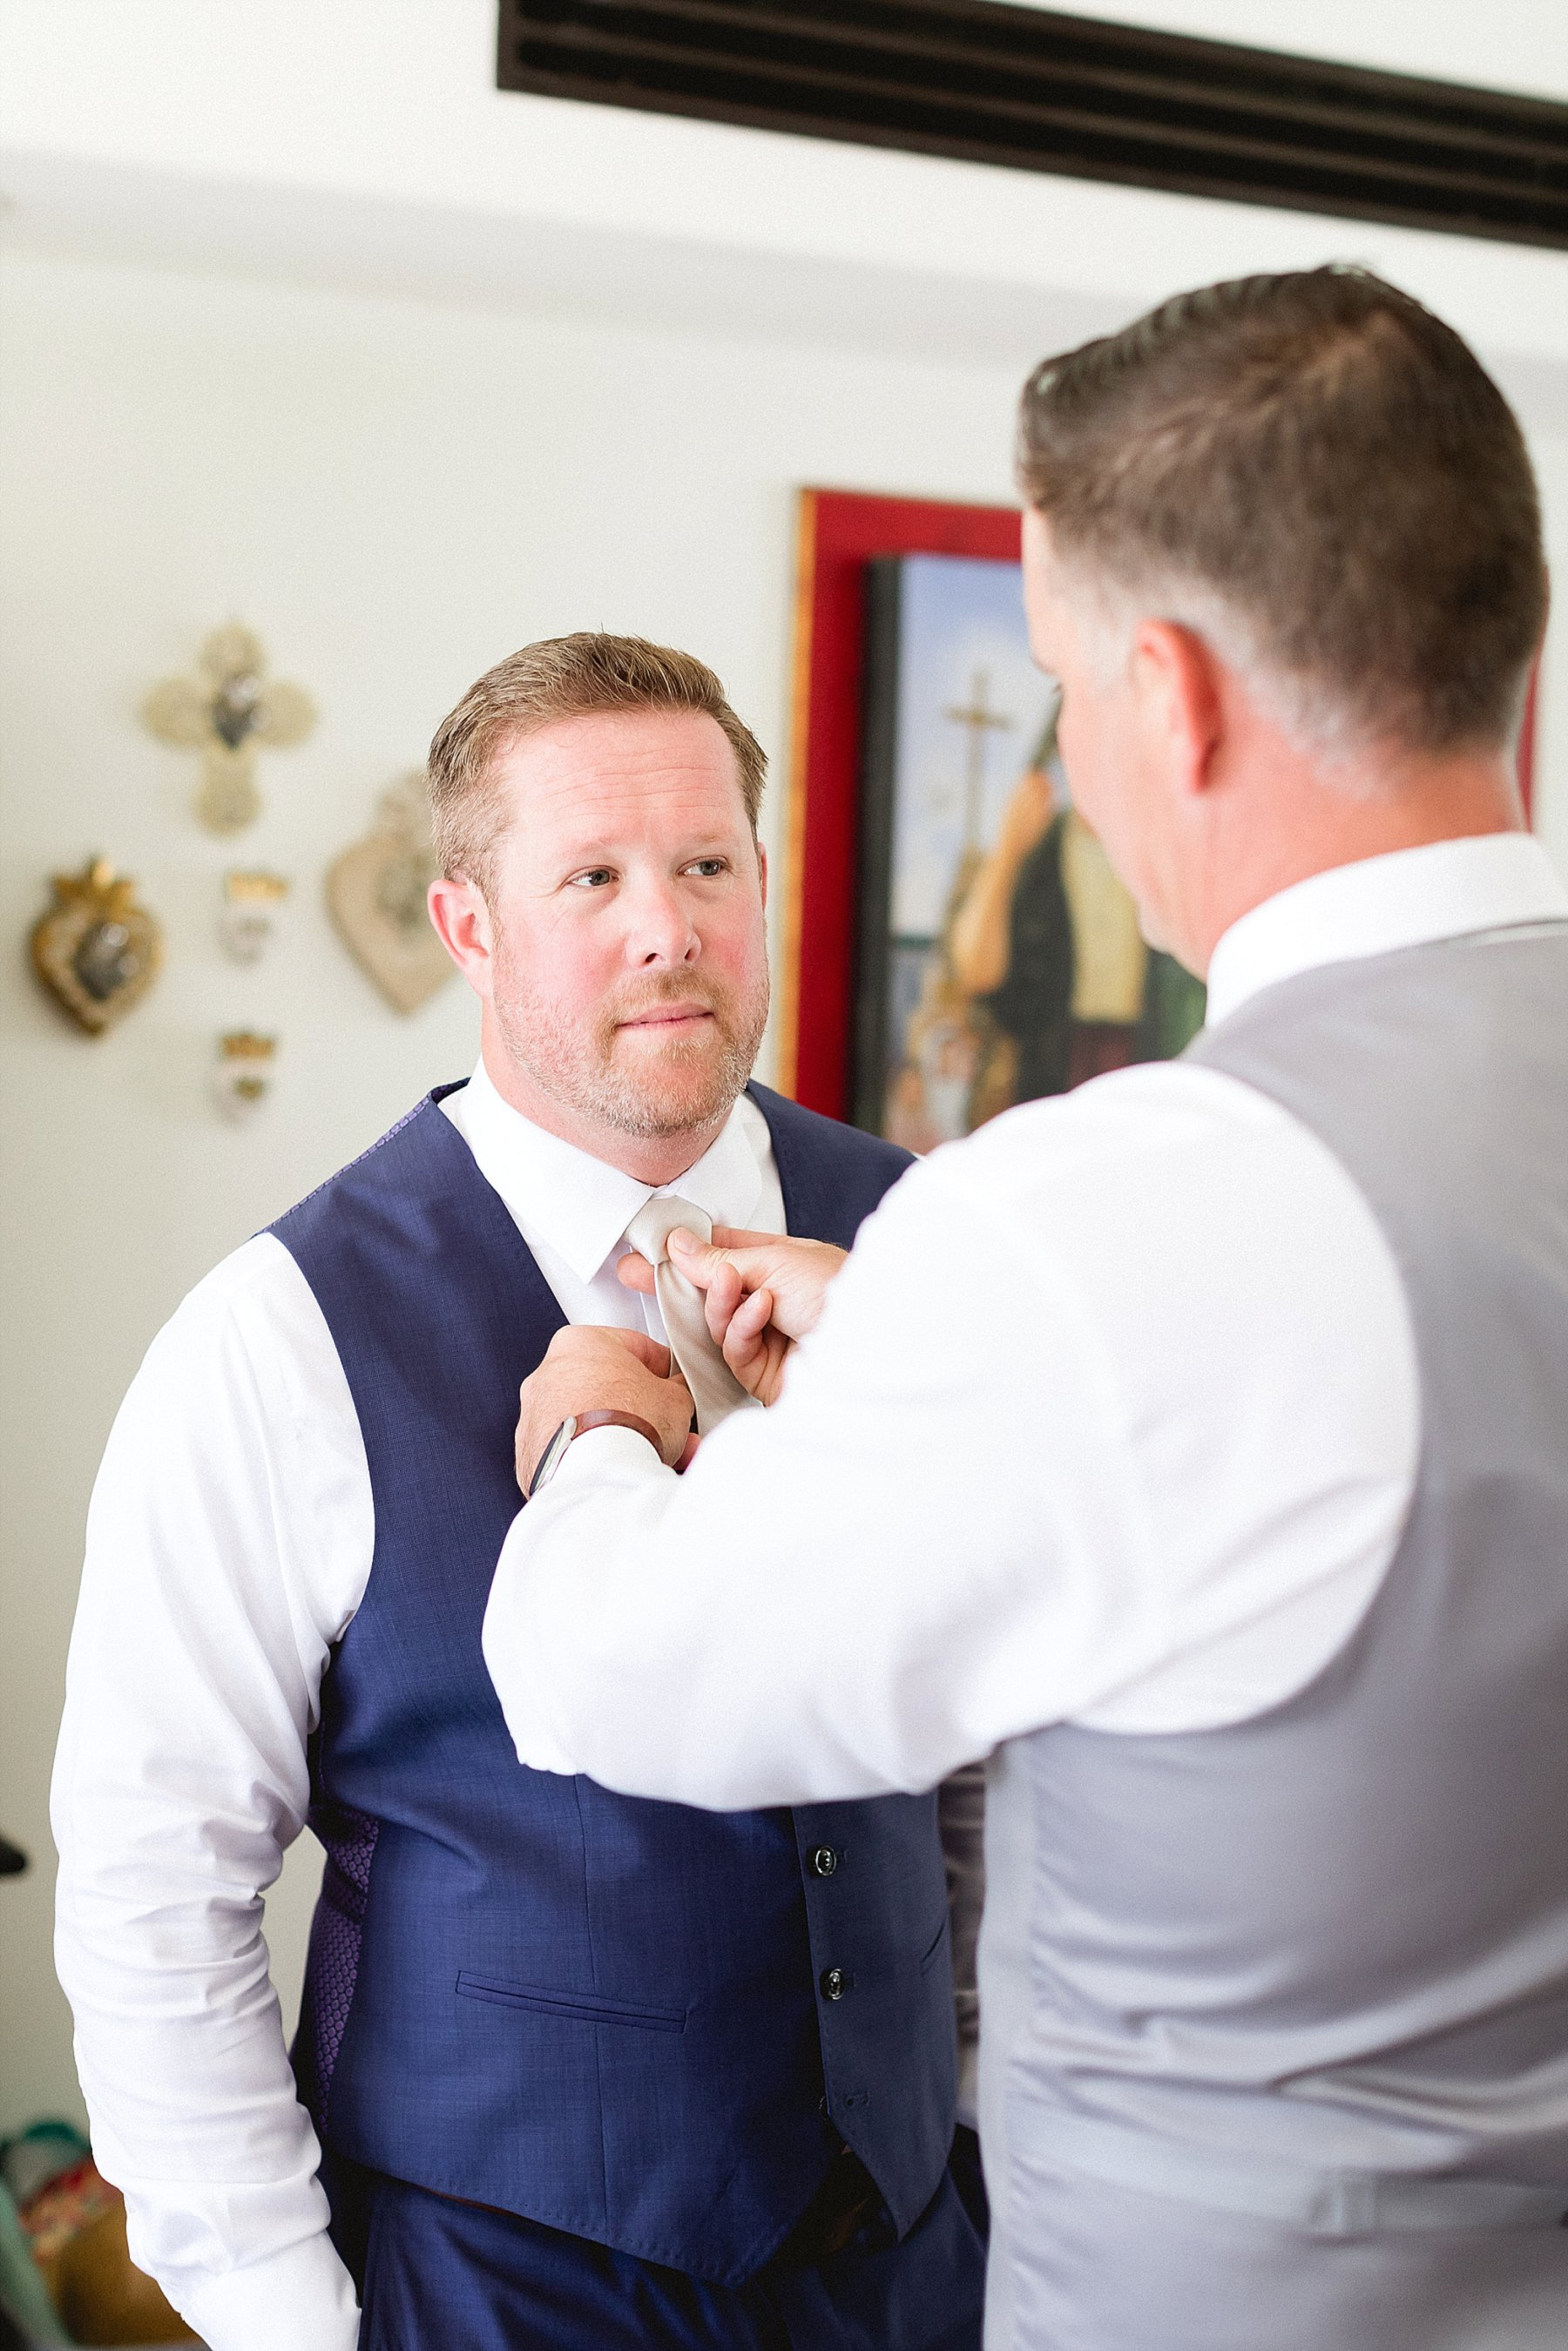 Groom getting ready at Hacienda Encantada in Cabo San Lucas Mexico, getting ready to head to his Wedding Venue at Flora Farms in Los Cabos, Mexico. Wedding Planning by Cabo Wedding Services and Photography by Sara Richardson,